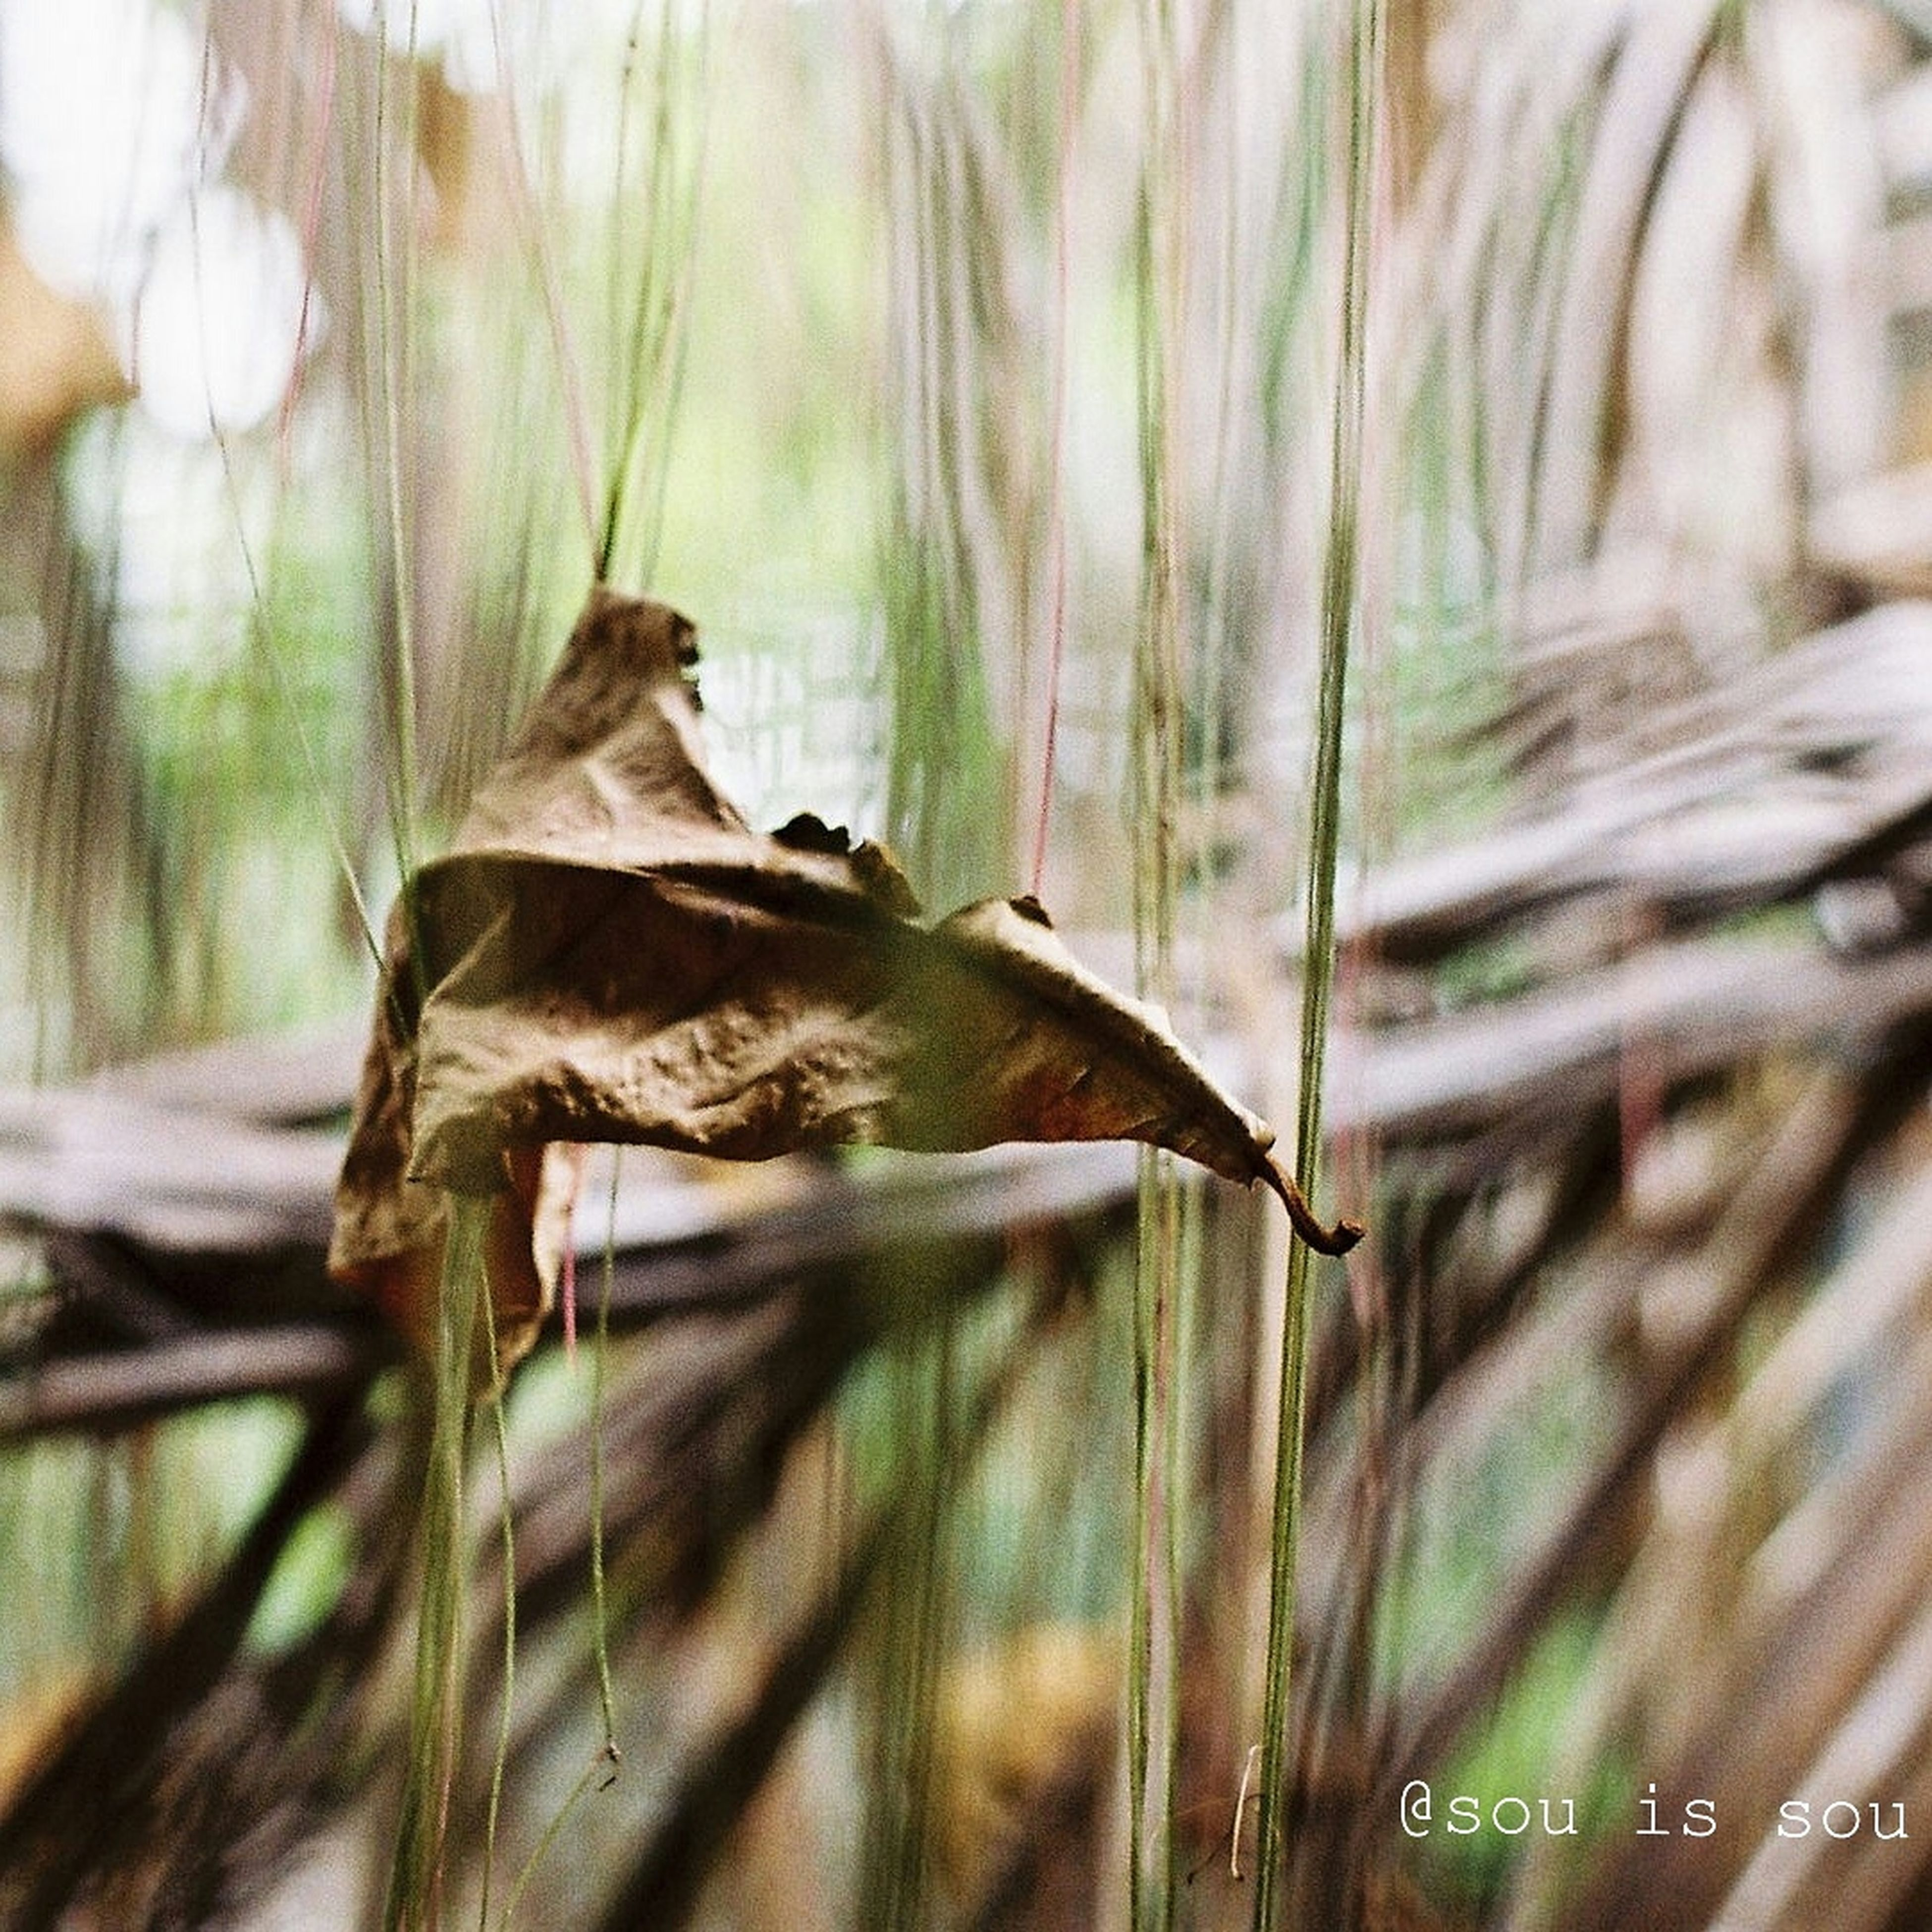 focus on foreground, wood - material, selective focus, close-up, nature, dry, day, tree, branch, outdoors, tree trunk, twig, wood, animals in the wild, no people, animal themes, wildlife, plant, forest, leaf